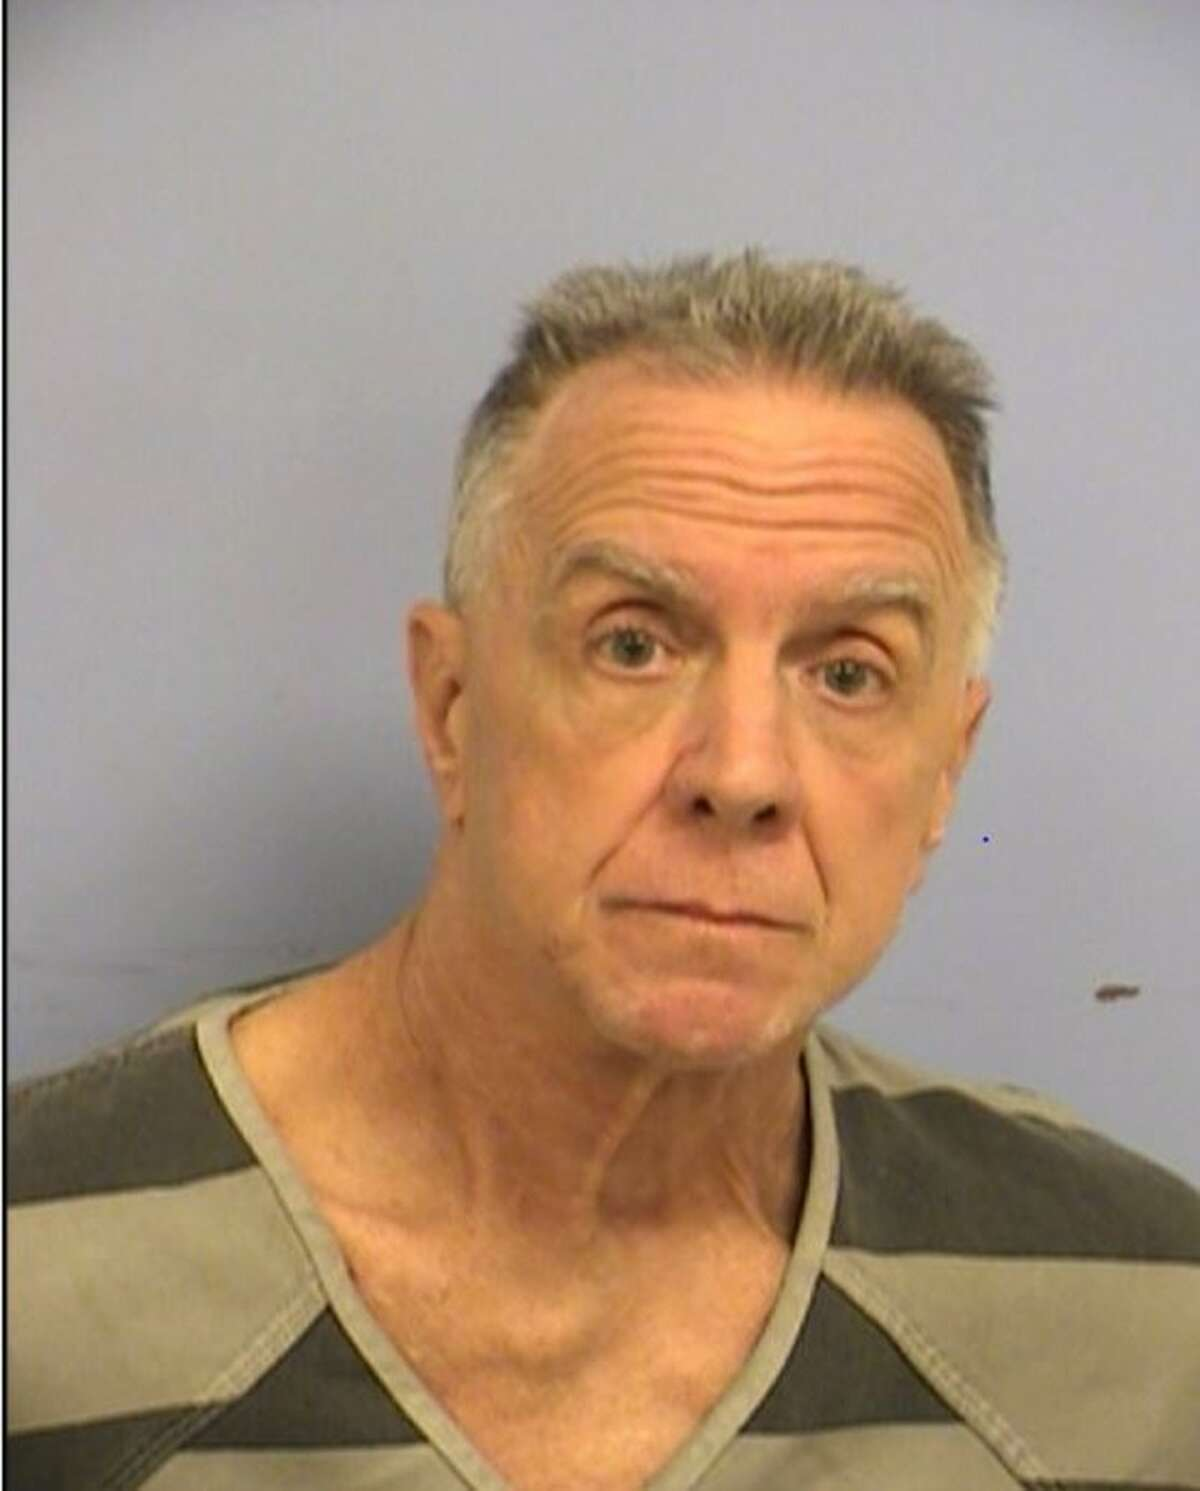 The Travis County Sheriff's Office said Keith James Cote offered $25,000 to watch a man murder his ex-girlfriend.See some of the most shocking crimes committed in Texas in 2017 up ahead.